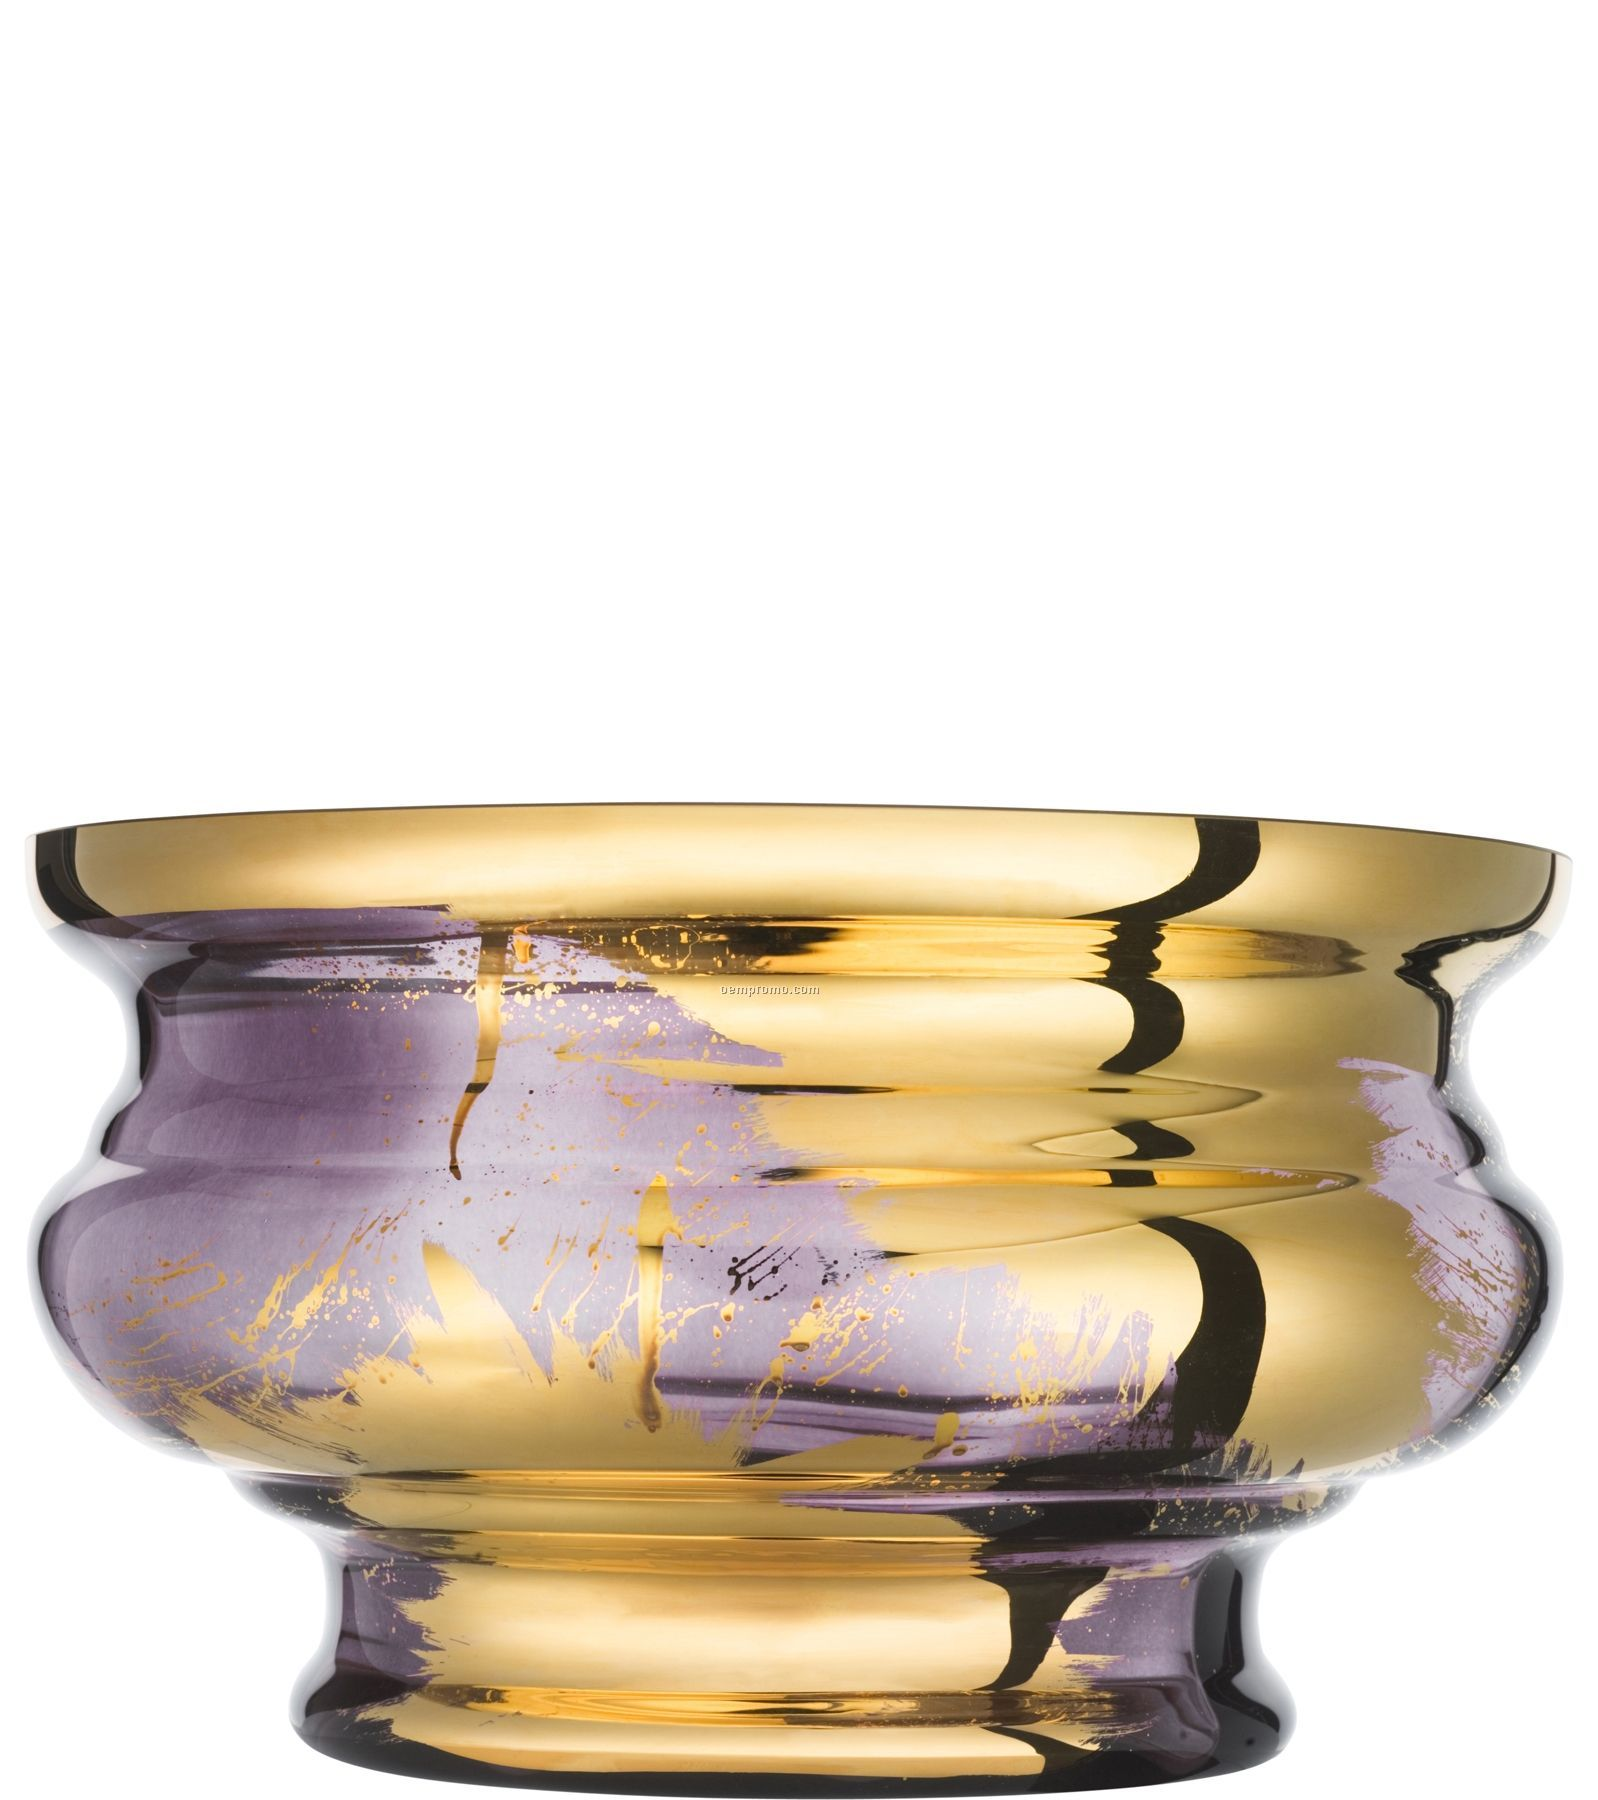 Jackie Hand Painted Glass Bowl By Asa Jungnelius (Aubergine)